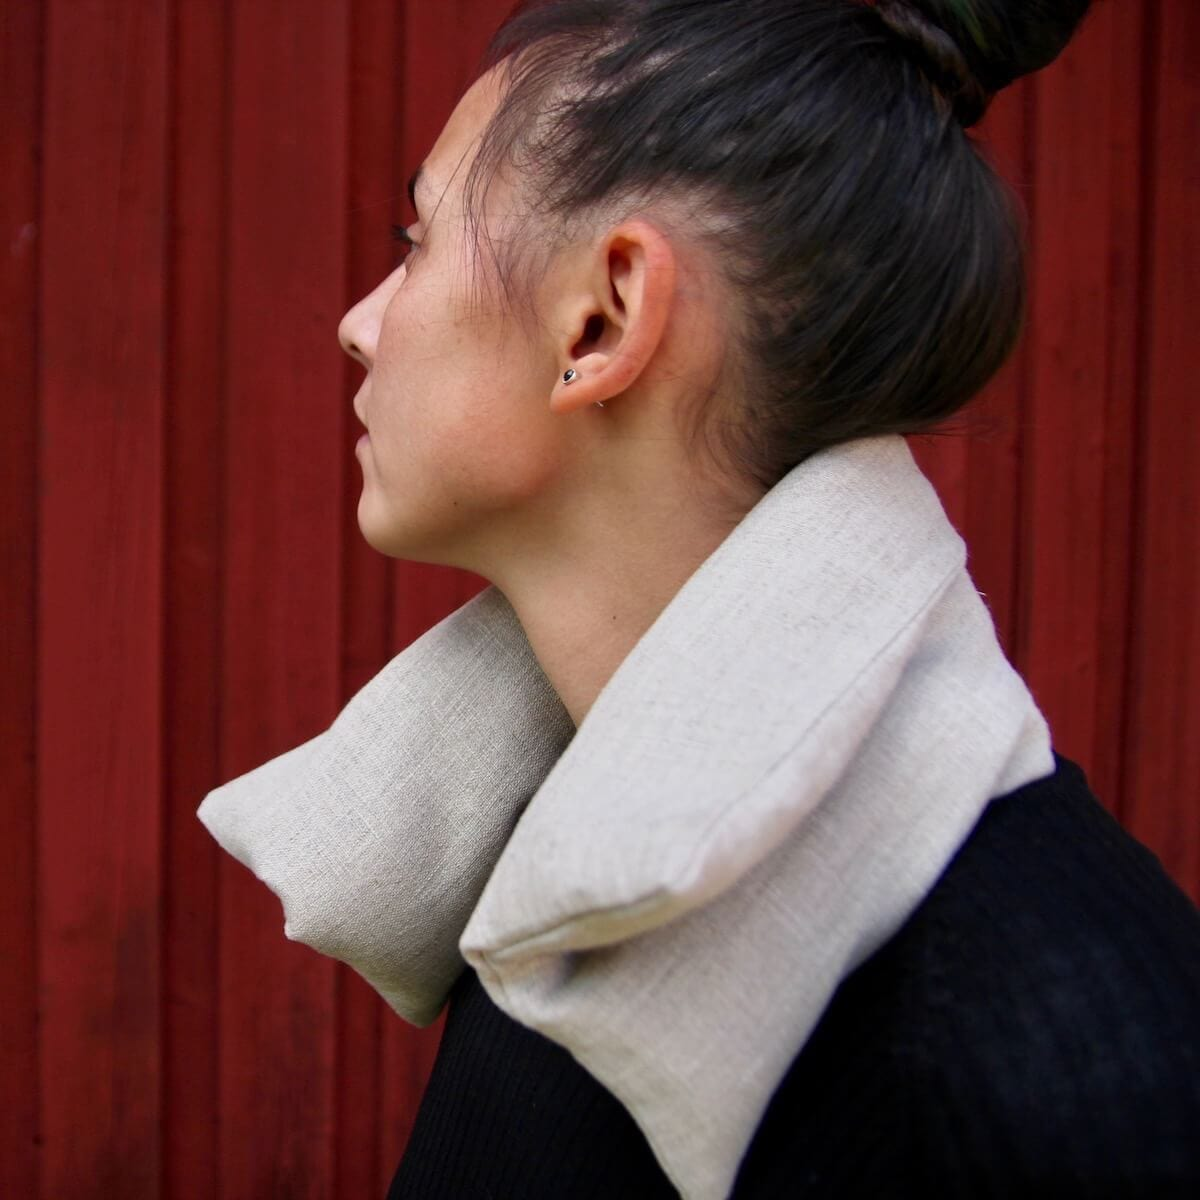 wheat bag for neck - Blasta Henriet